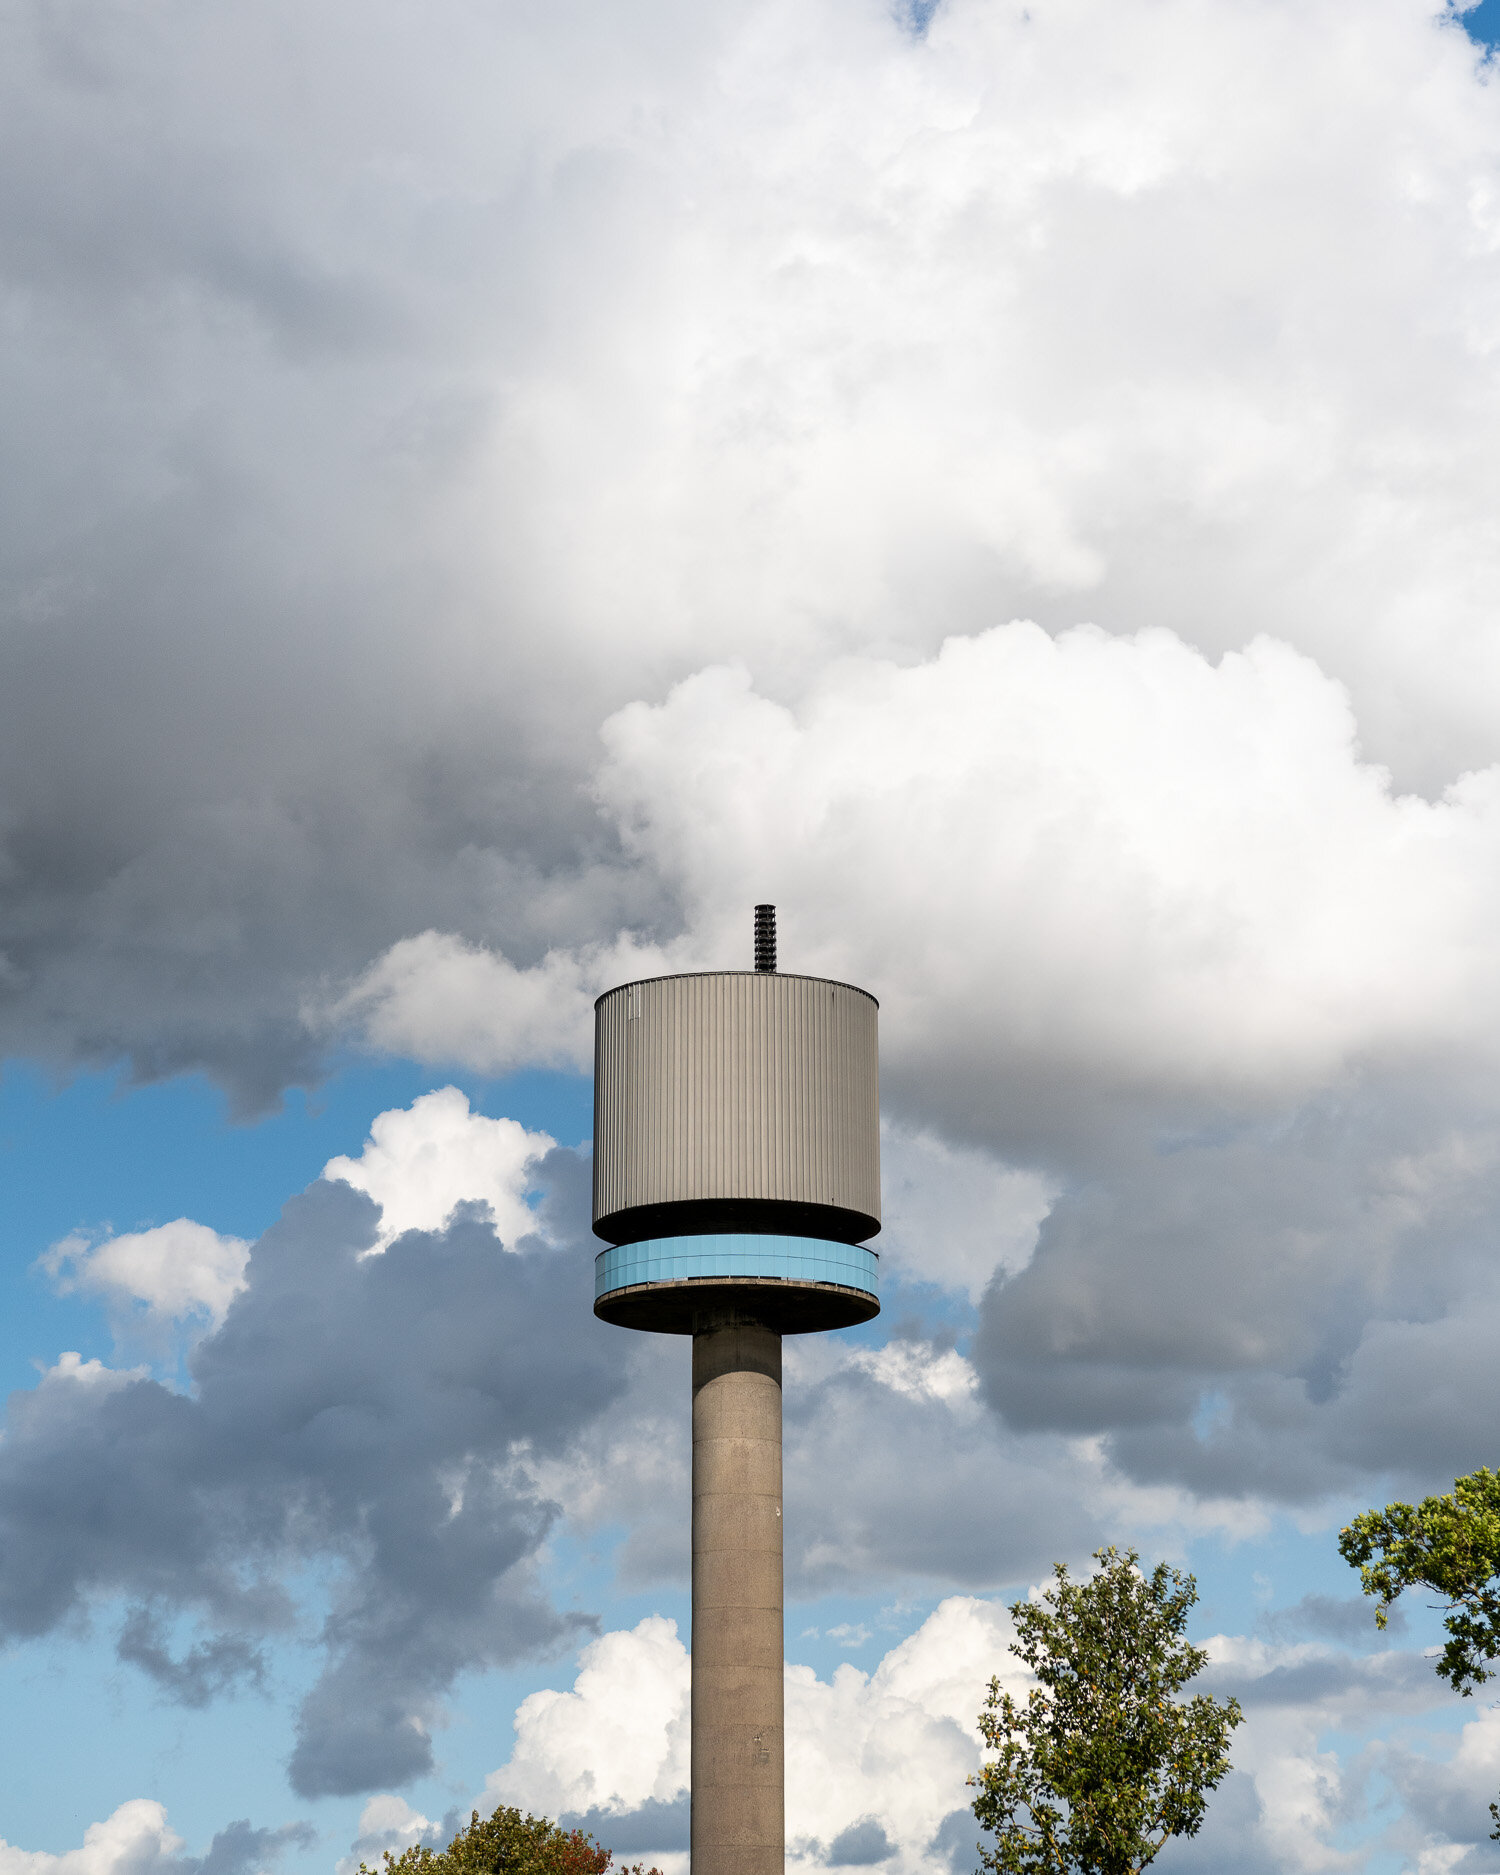 Water tower at Risø